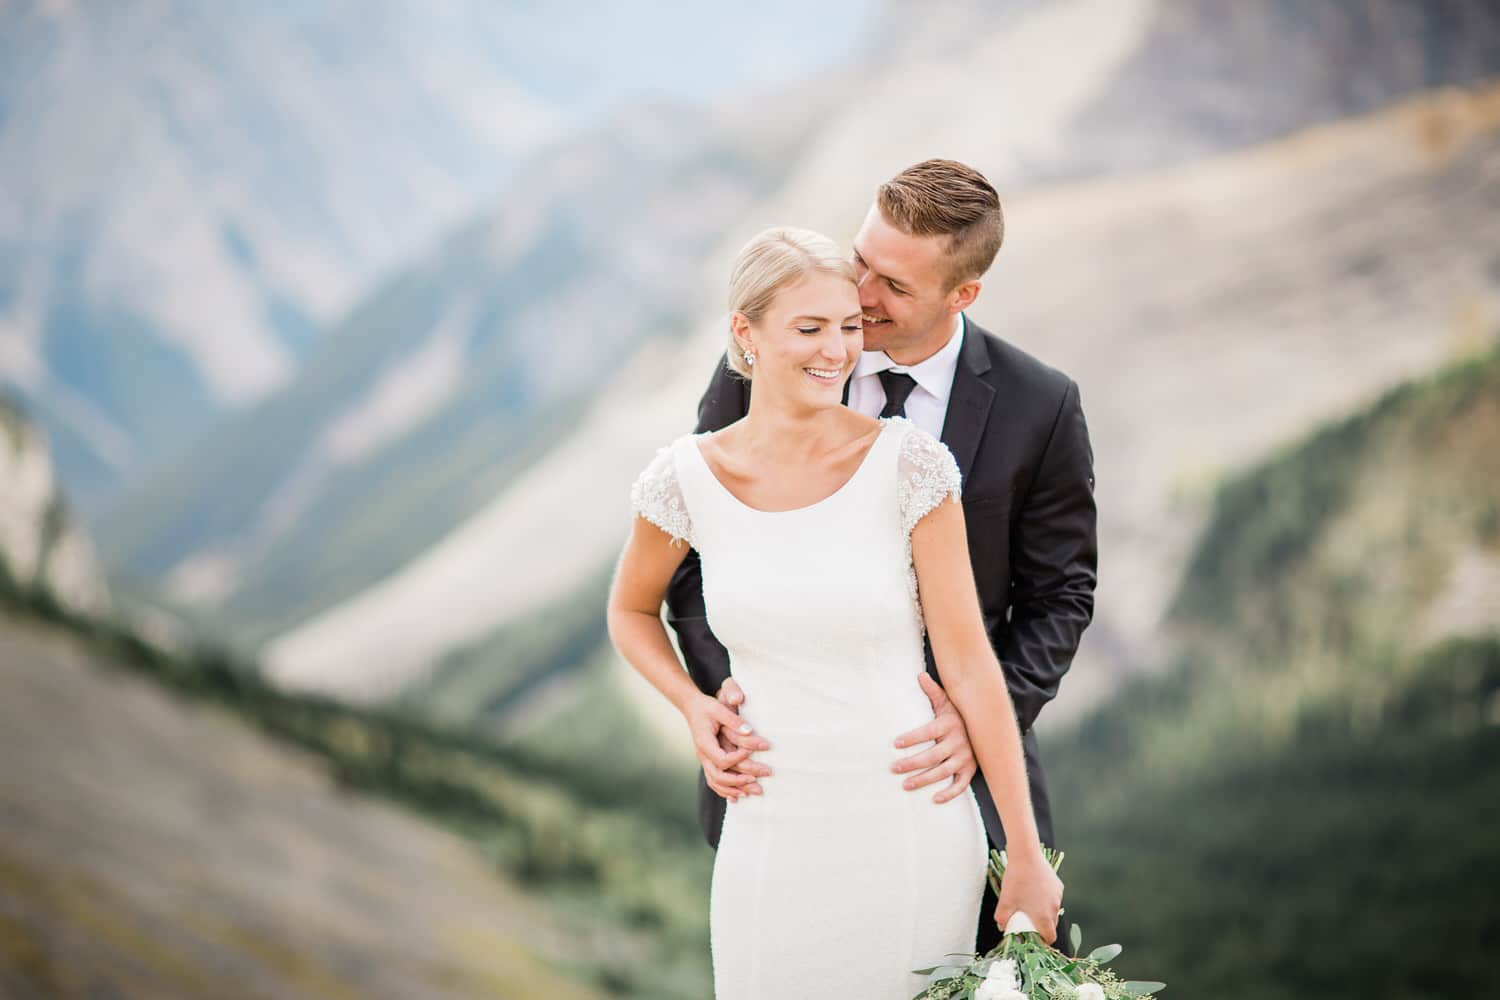 Wedding Photography Calgary - How to Make Your Wedding Day Photographs More Interesting?